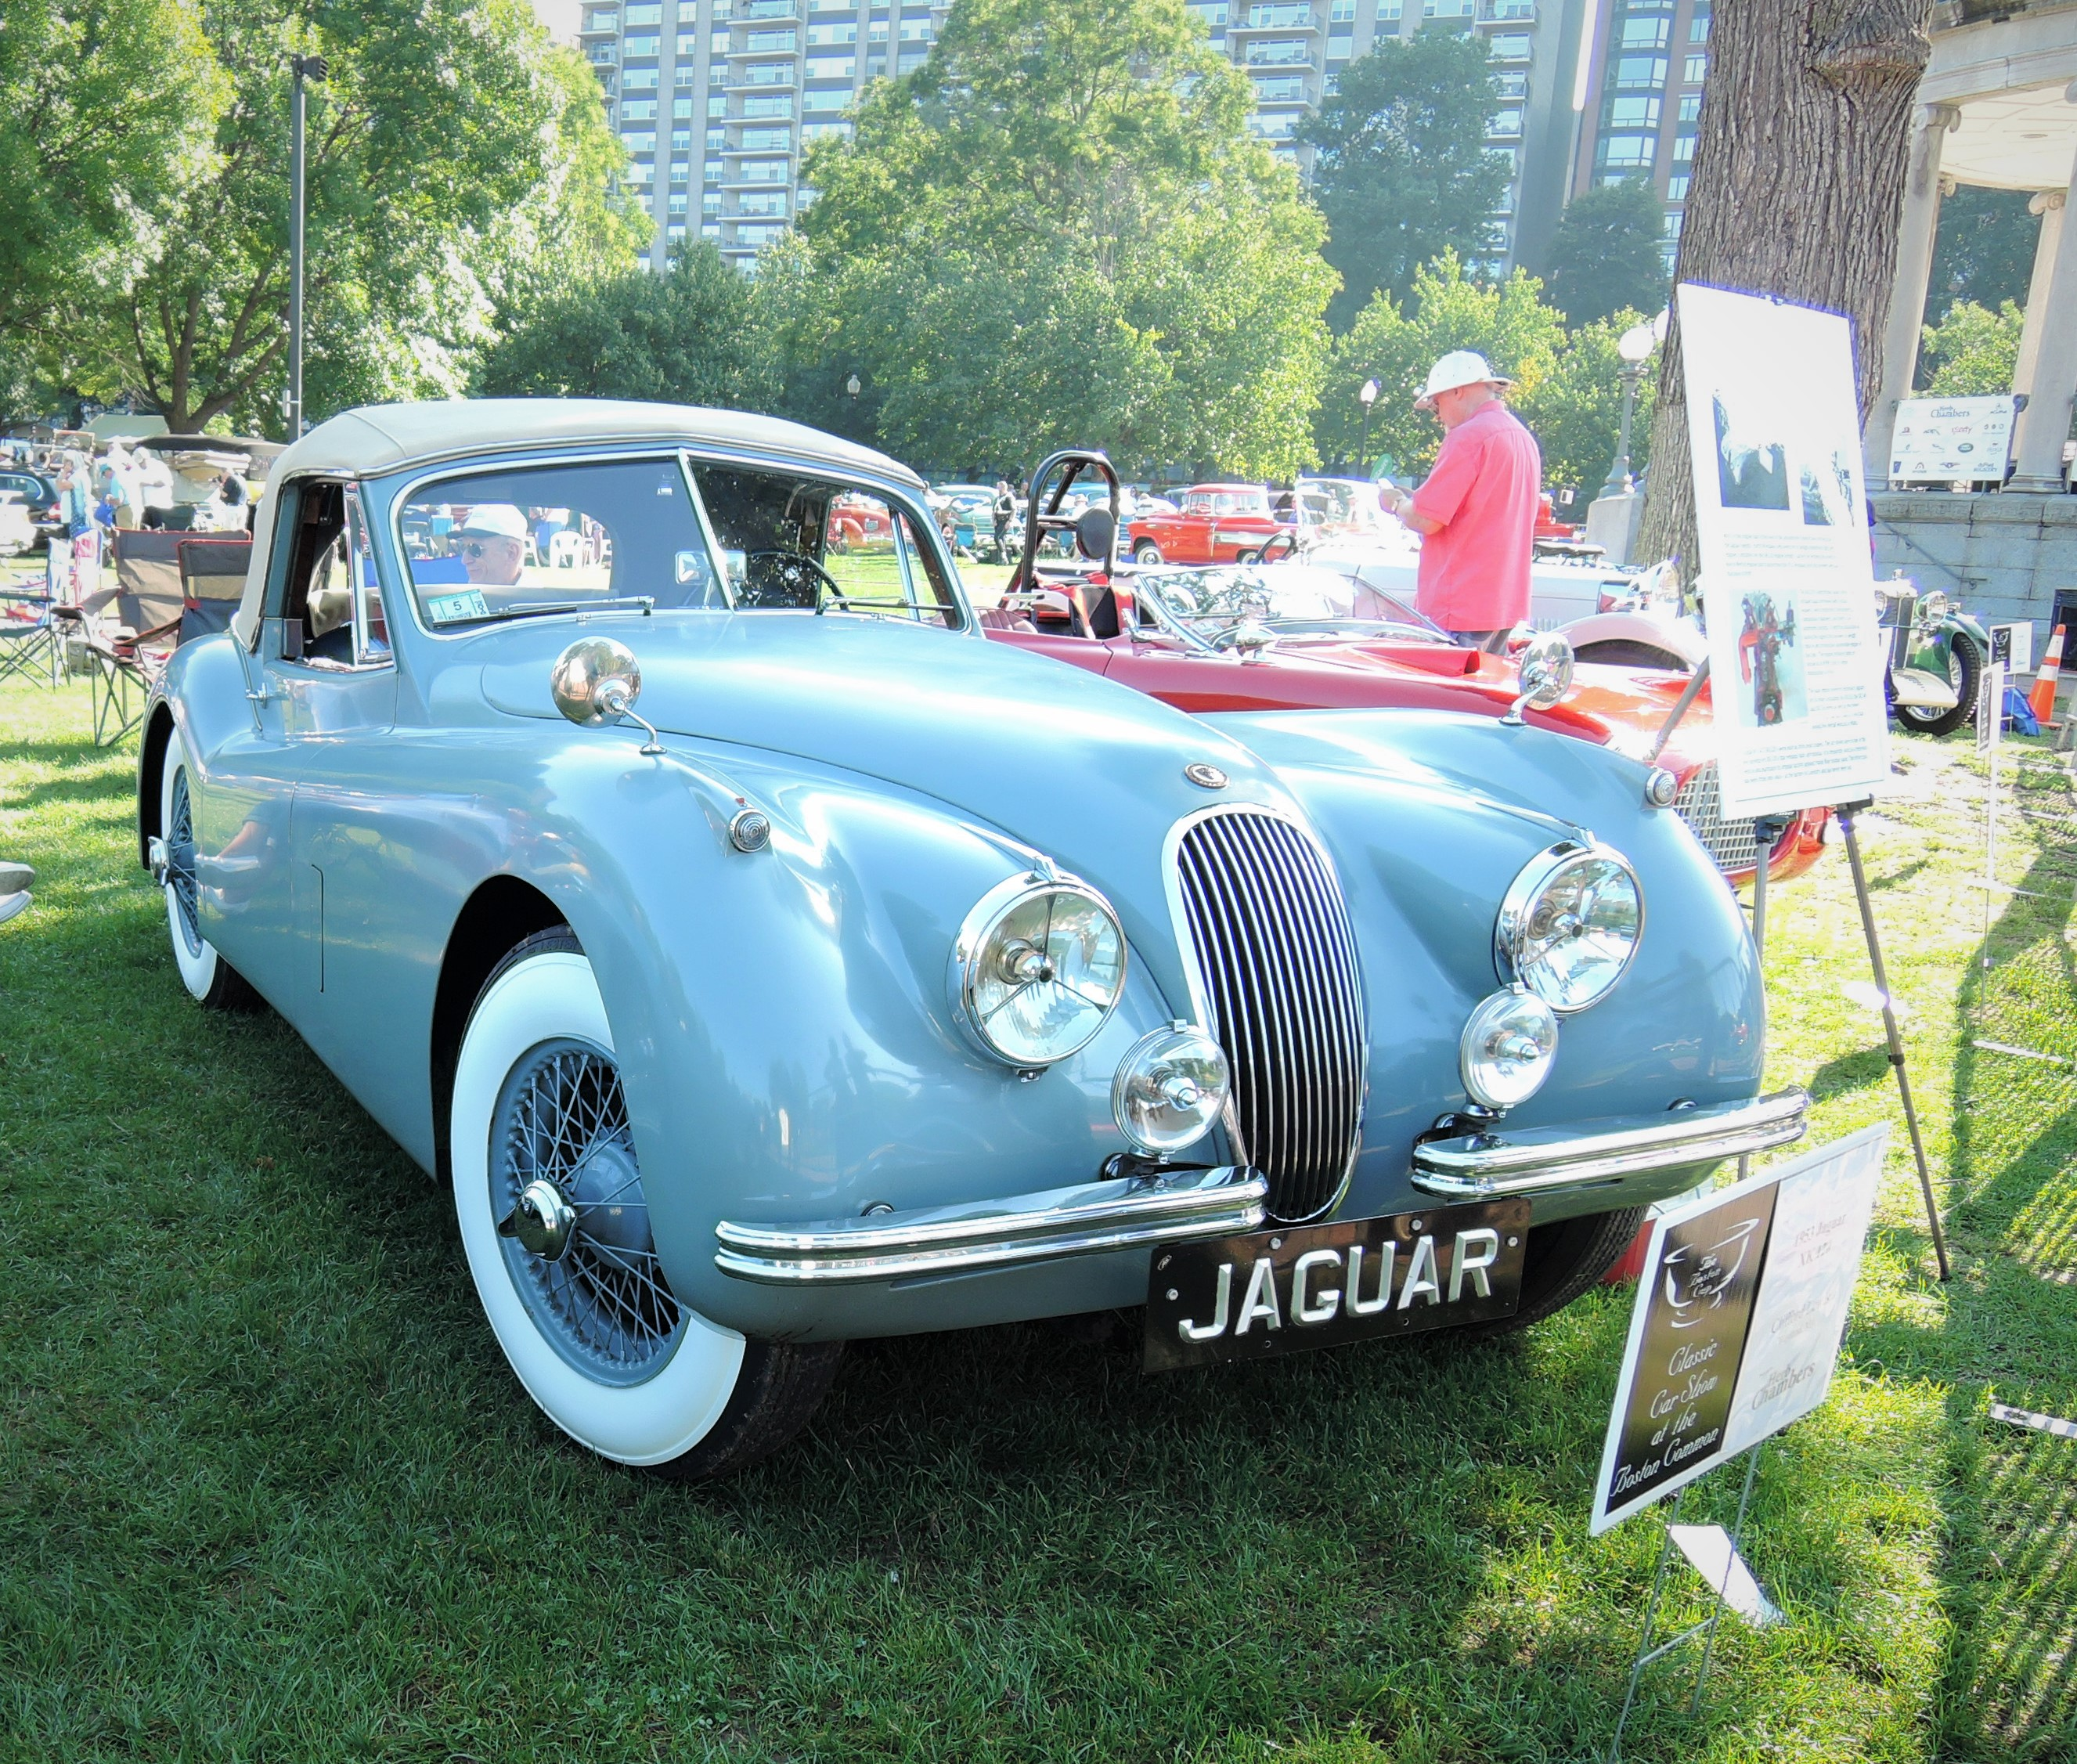 blue 1953 Jaguar XK 120 - The Boston Cup 2017